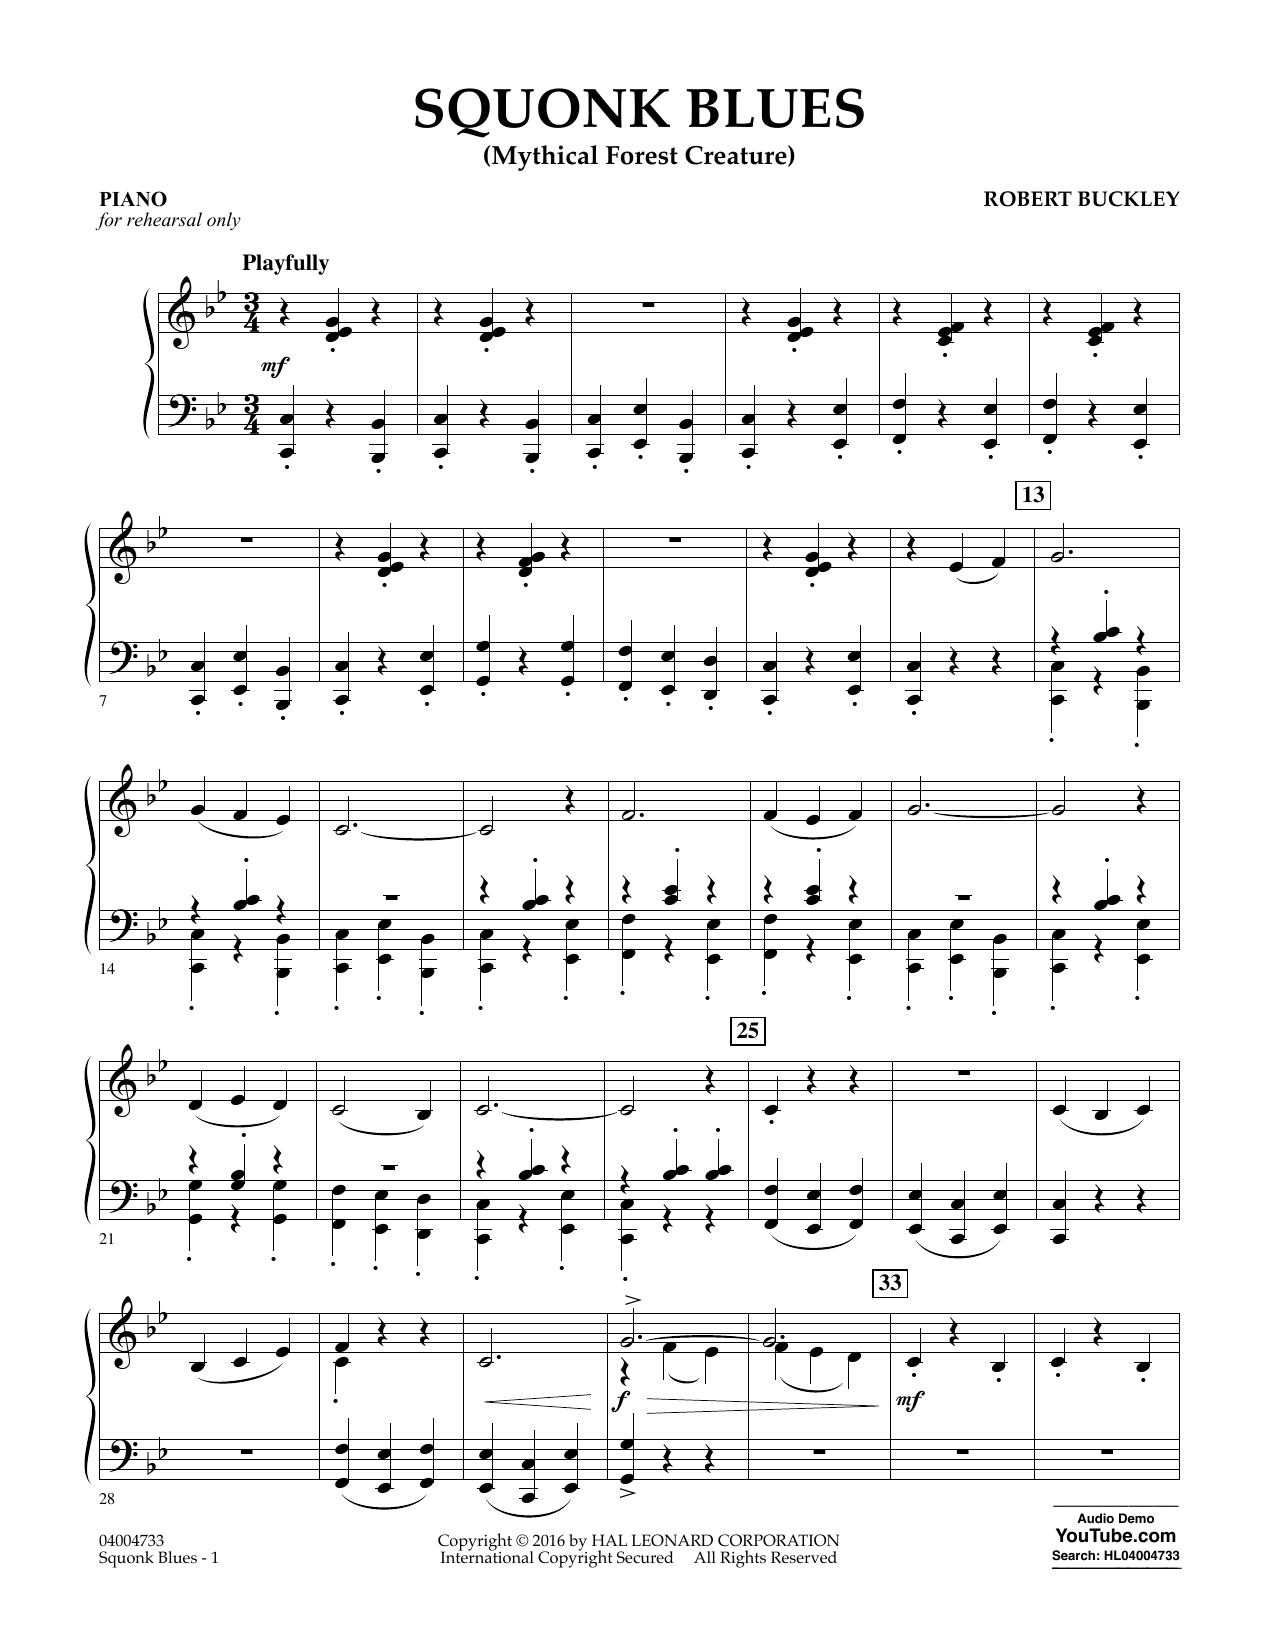 Squonk Blues - Piano - Sheet Music to Download